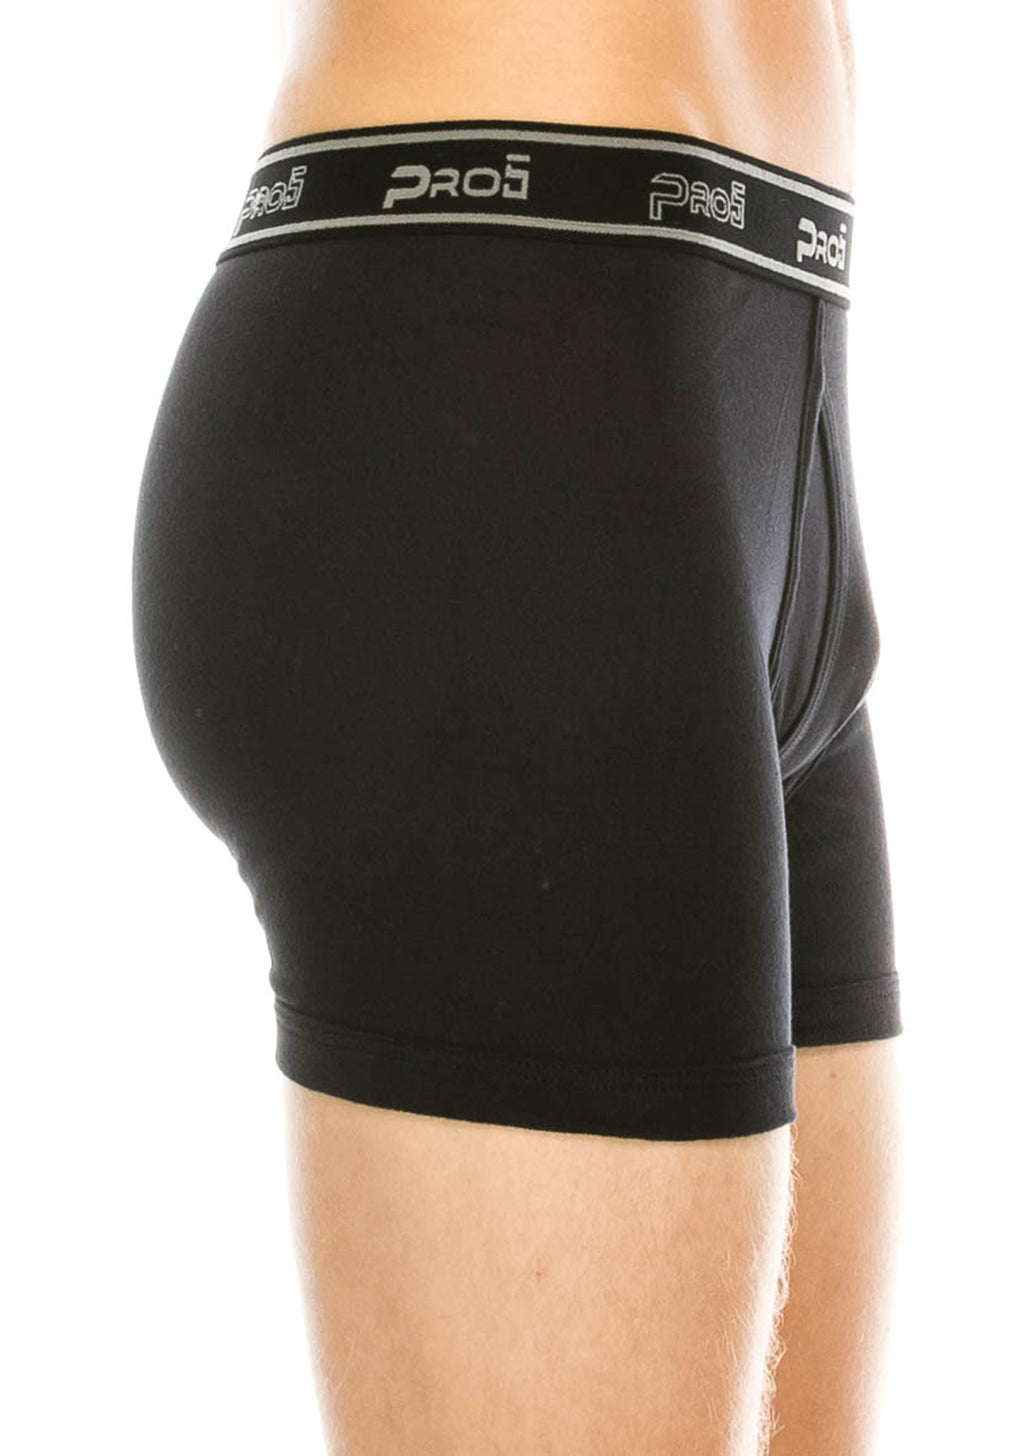 Boxer Briefs (2 pack) - Pro 5 Apparel